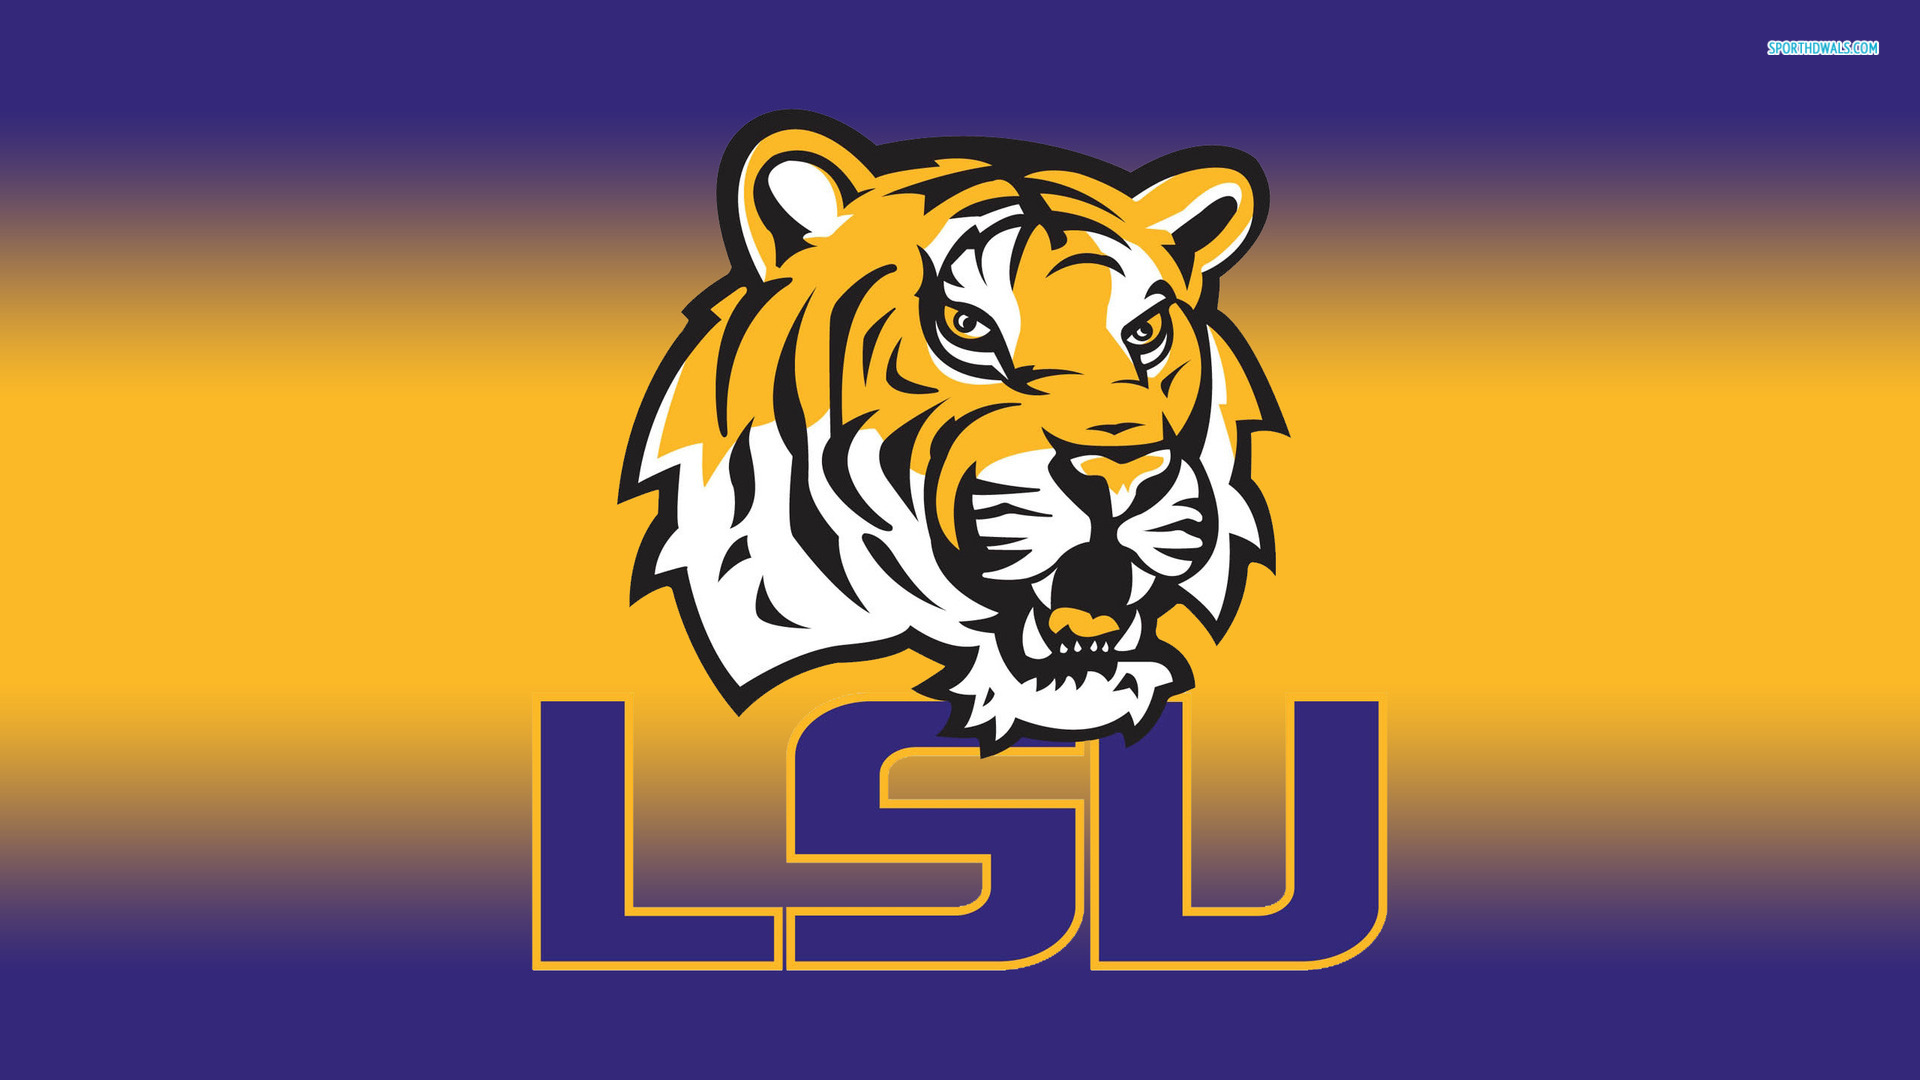 LSU Tigers wallpaper 1920x1080